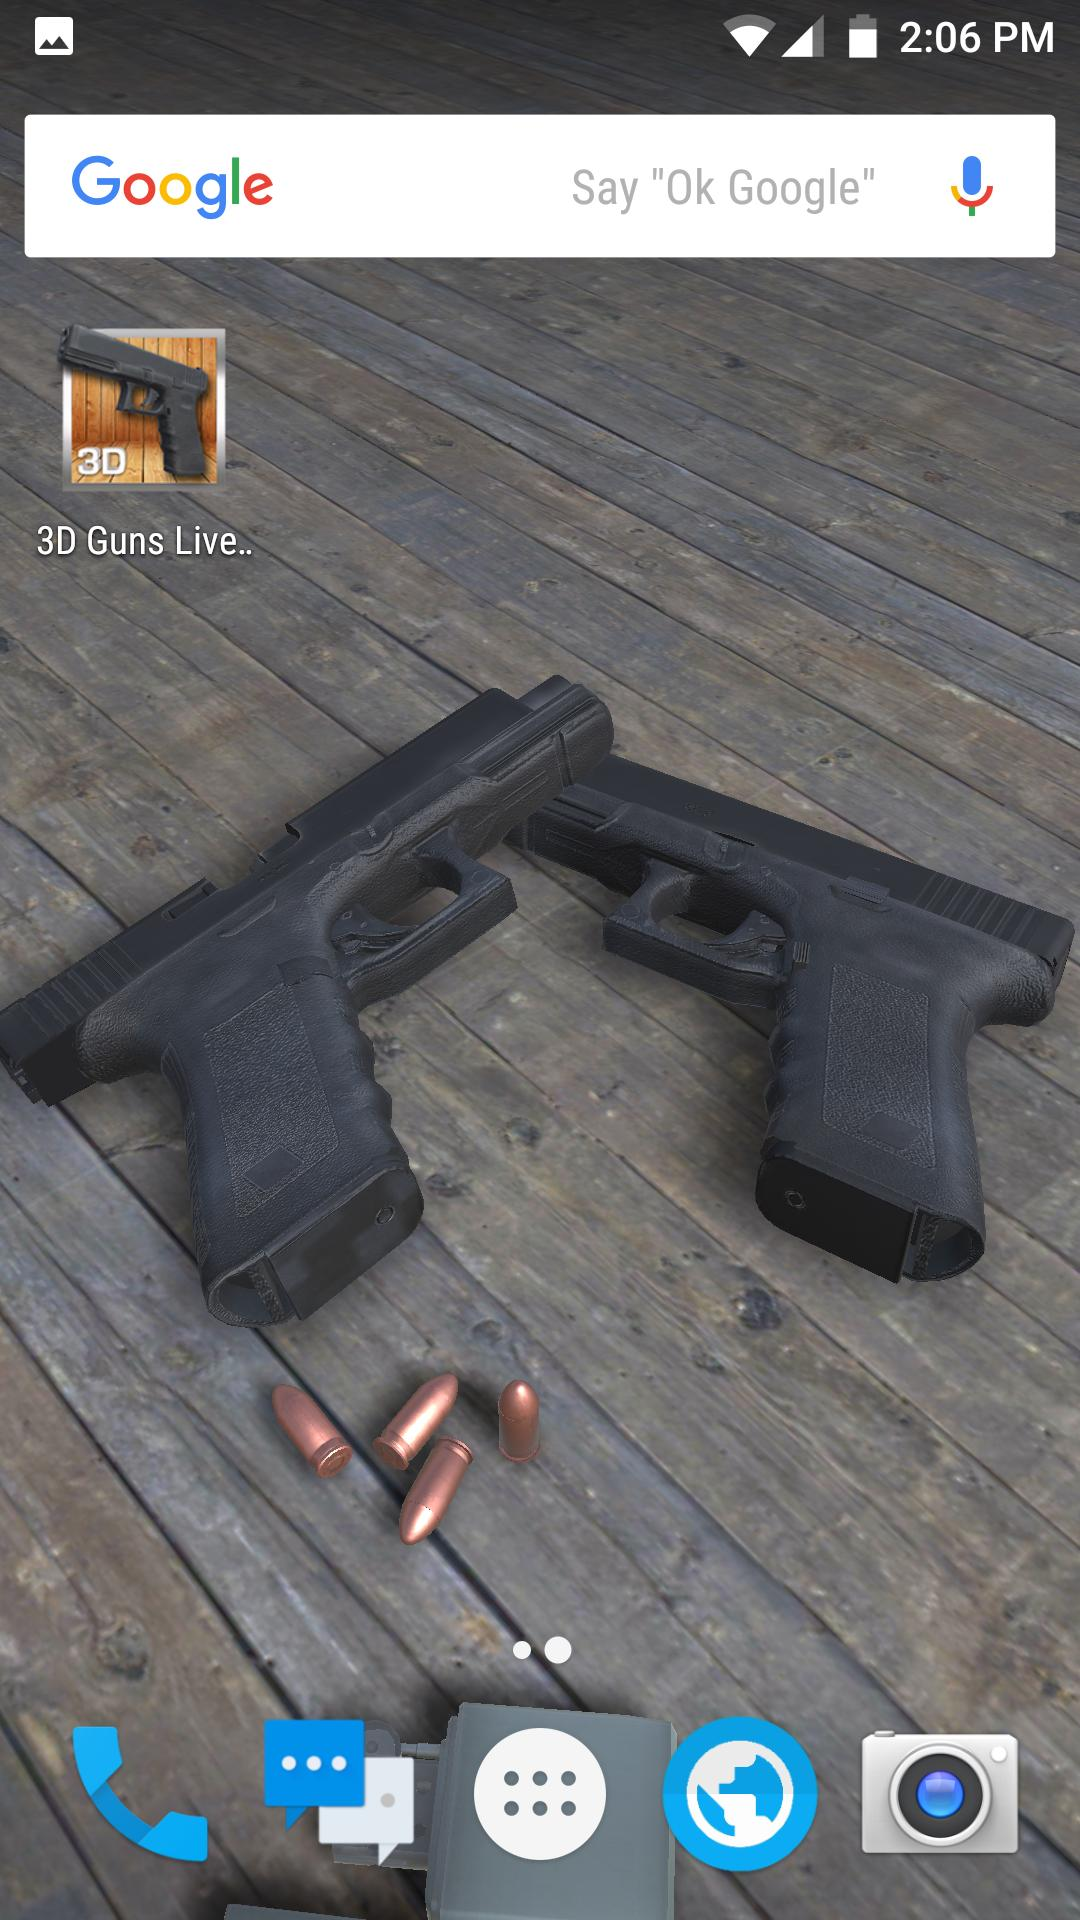 3D Guns Live Wallpaper HD for Android - APK Download